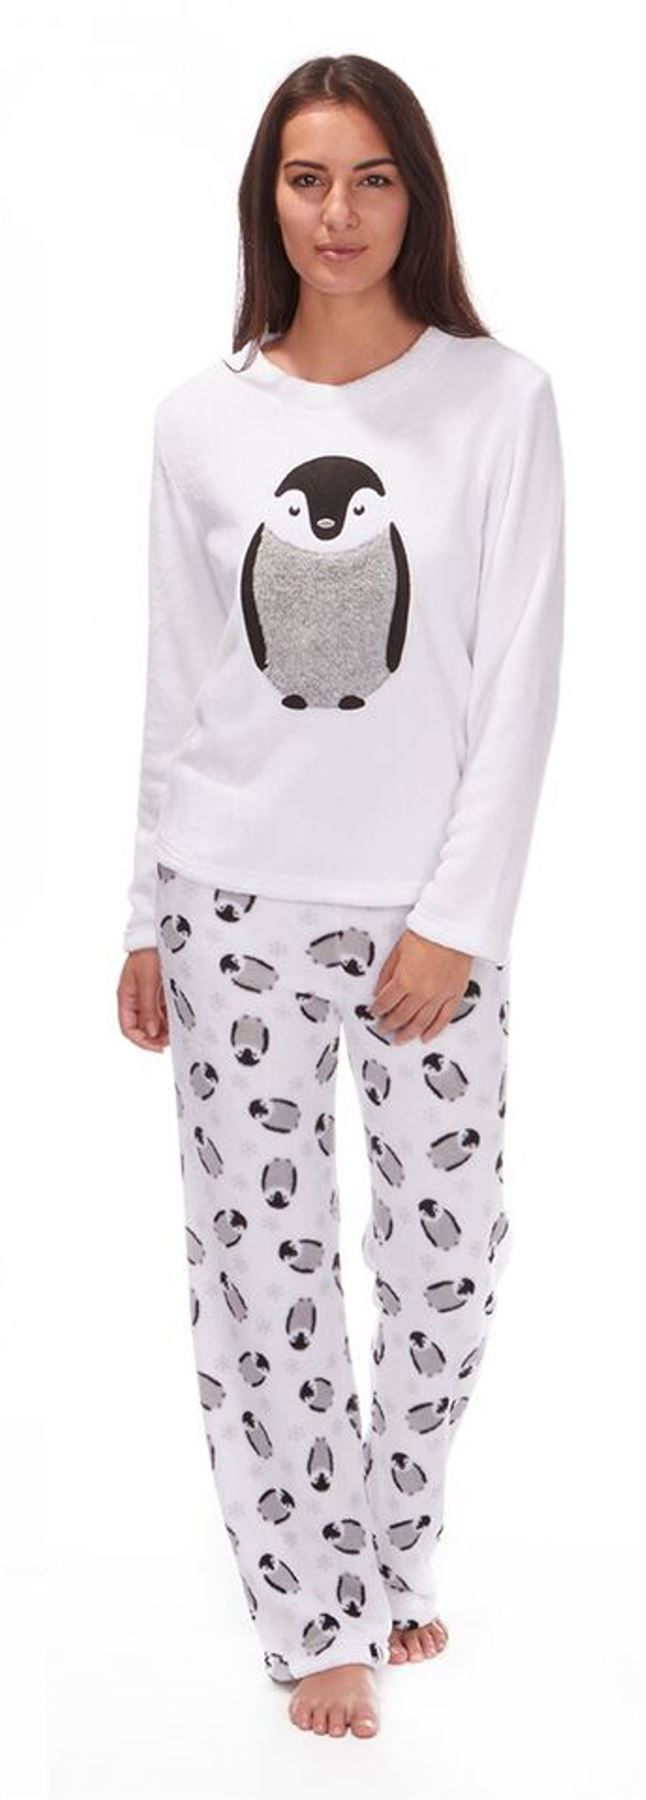 Shop for penguin pajamas women online at Target. Free shipping on purchases over $35 and save 5% every day with your Target REDcard.